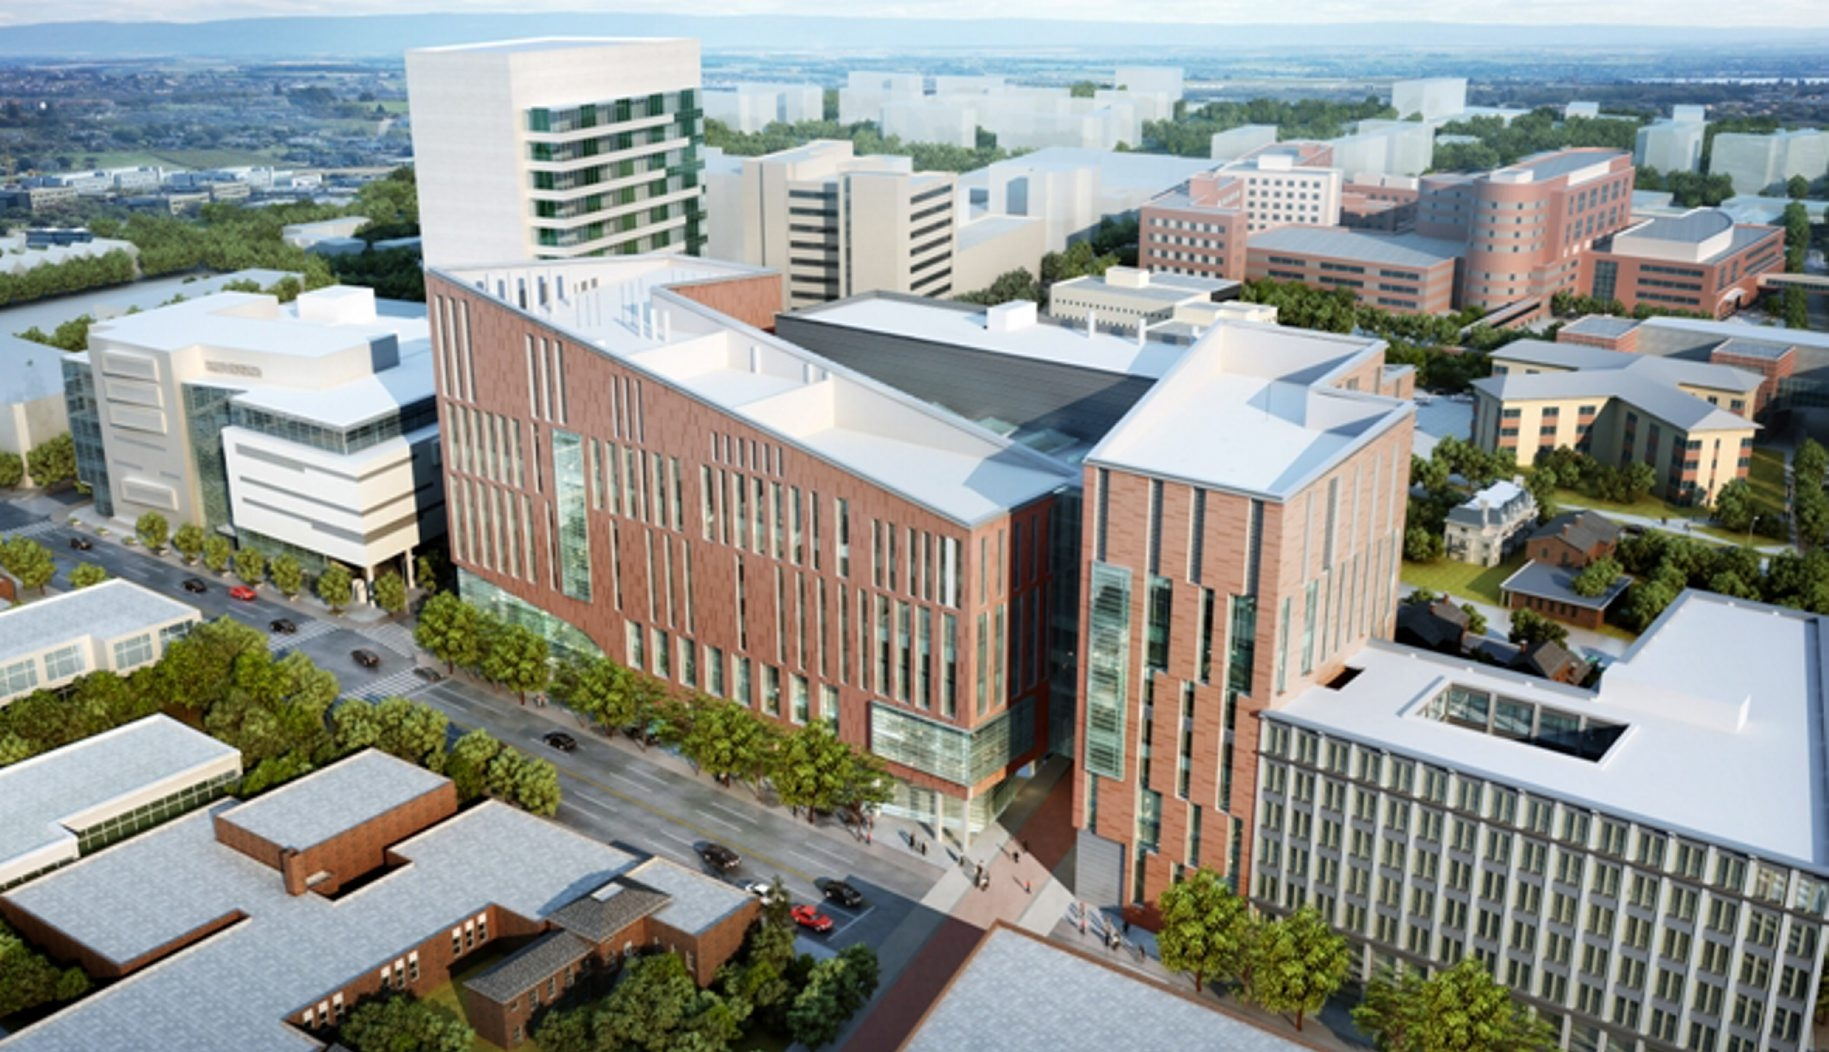 The new UB Medical School will consist of two L-shaped structures connected by an atrium.